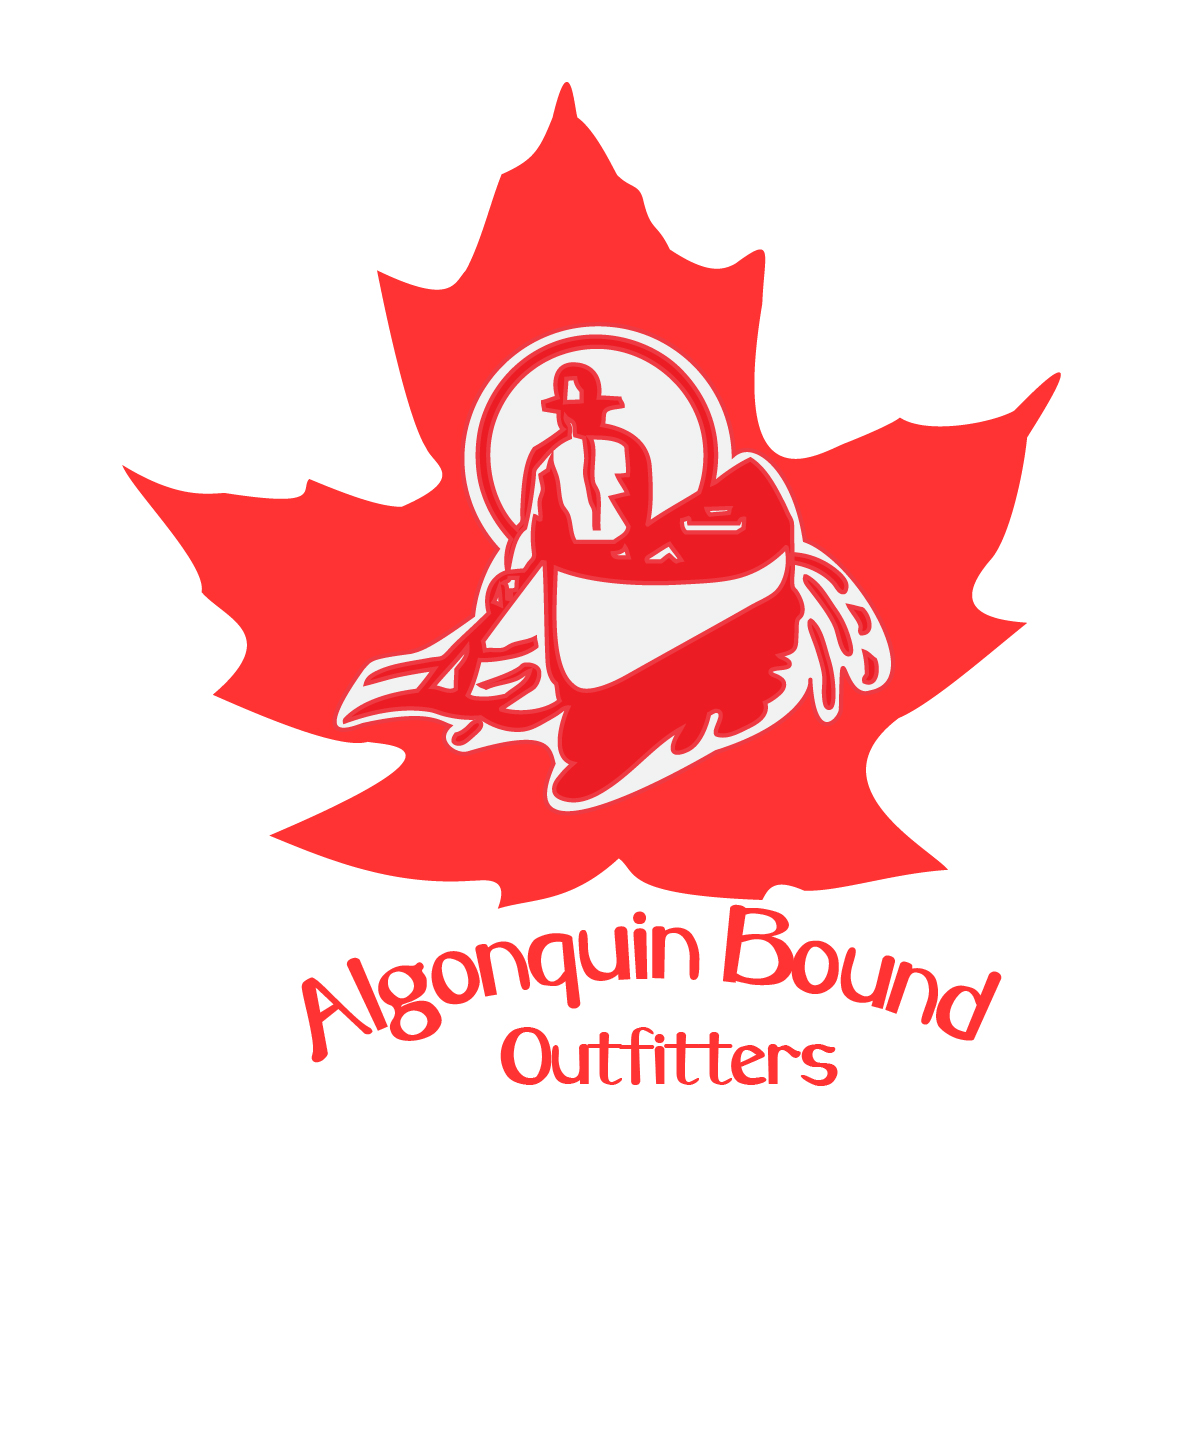 Logo Design by Nancy Grant - Entry No. 55 in the Logo Design Contest Captivating Logo Design for Algonquin Bound Outfitters.